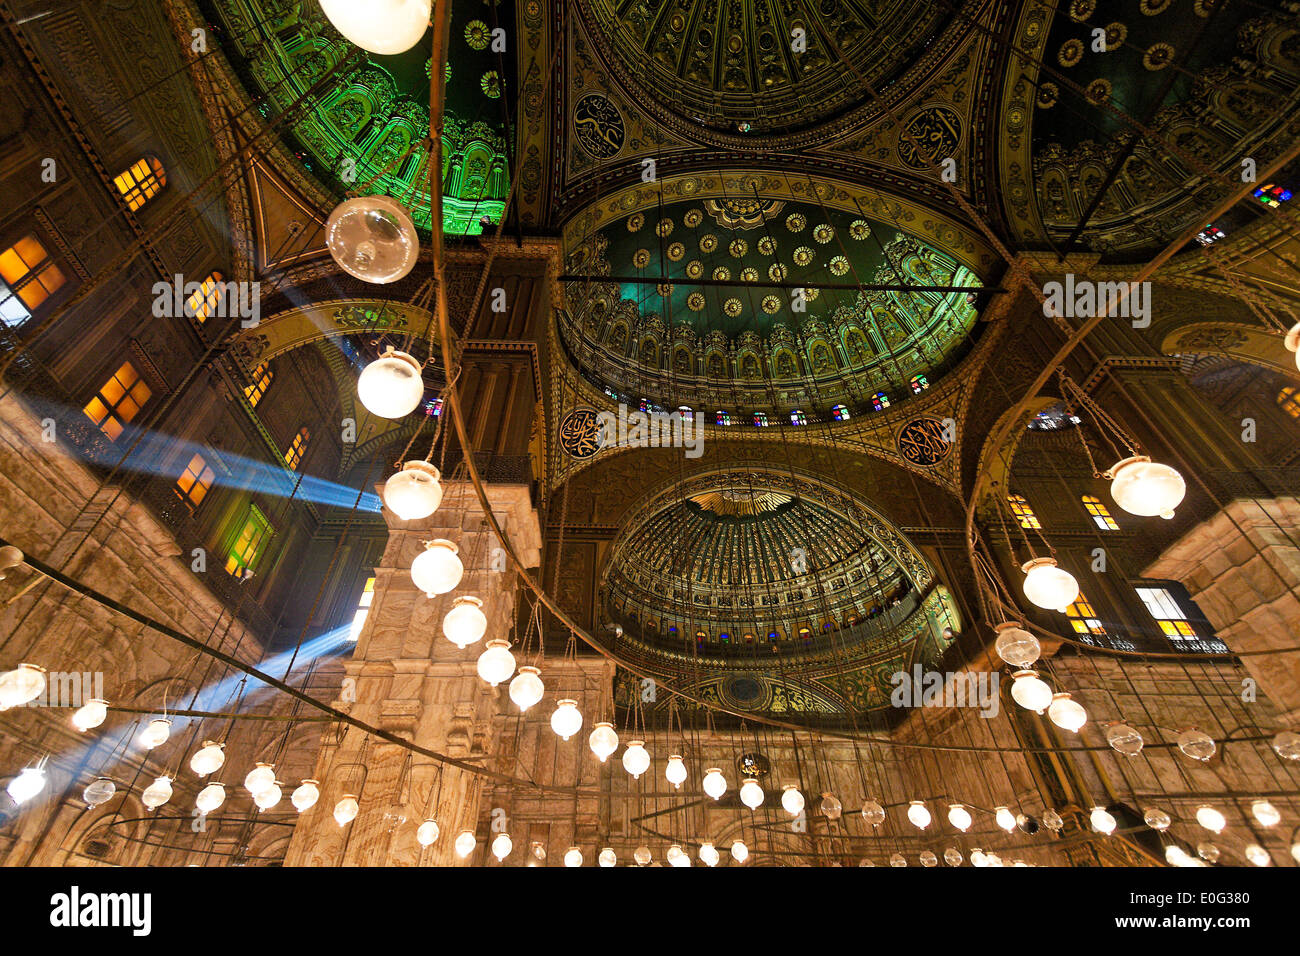 Egypt, Cairo. Mohammed Ali Moschee. Indoor photograph., aegypten, Kairo. Mohammed Ali Moschee. Innenaufnahme. - Stock Image